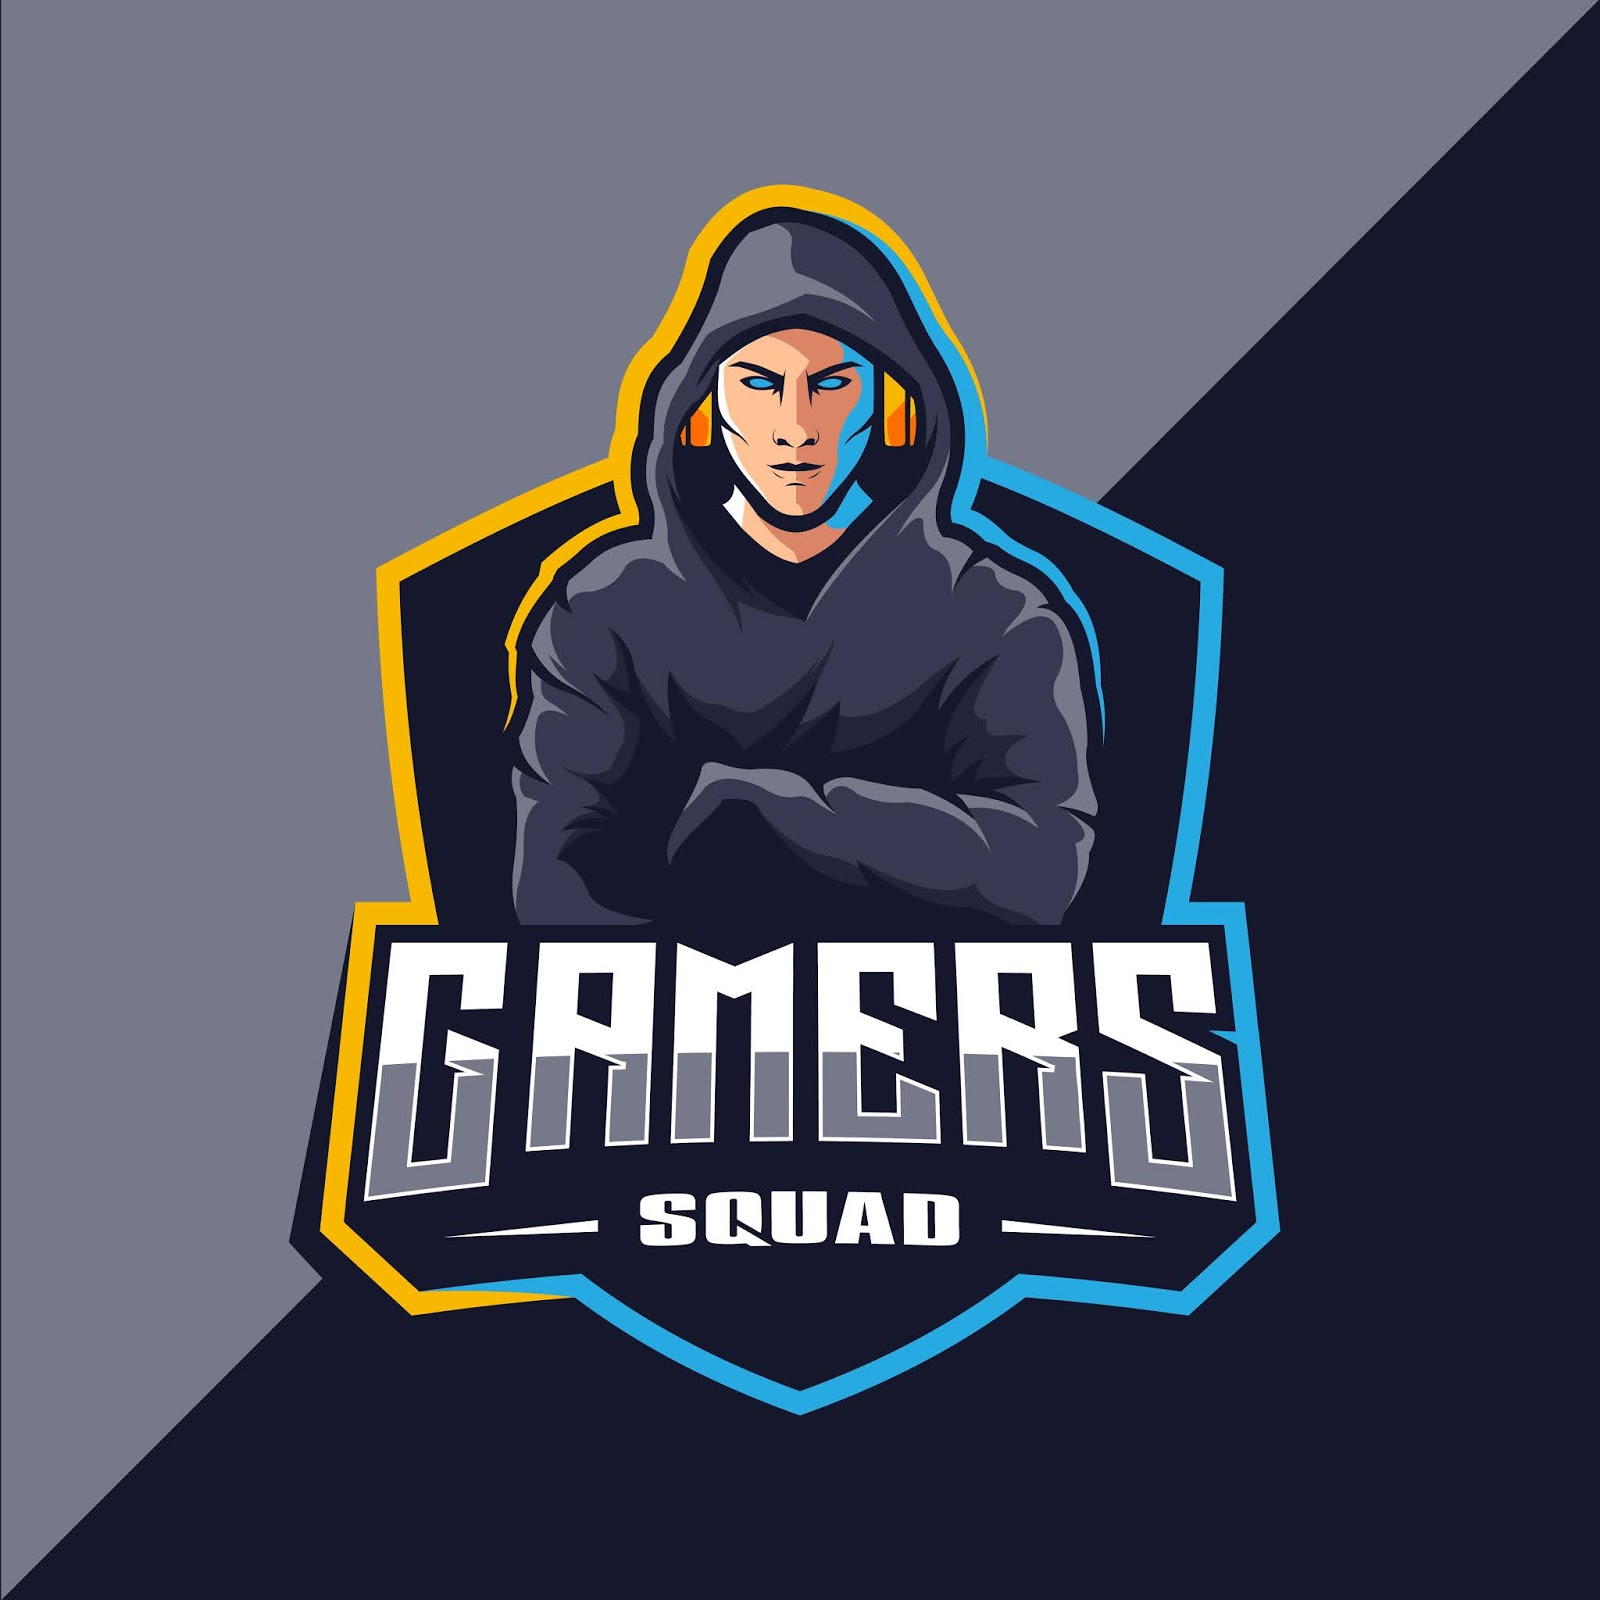 Gamer Esport Mascot Logo Design Free Download Vector CDR, AI, EPS and PNG Formats